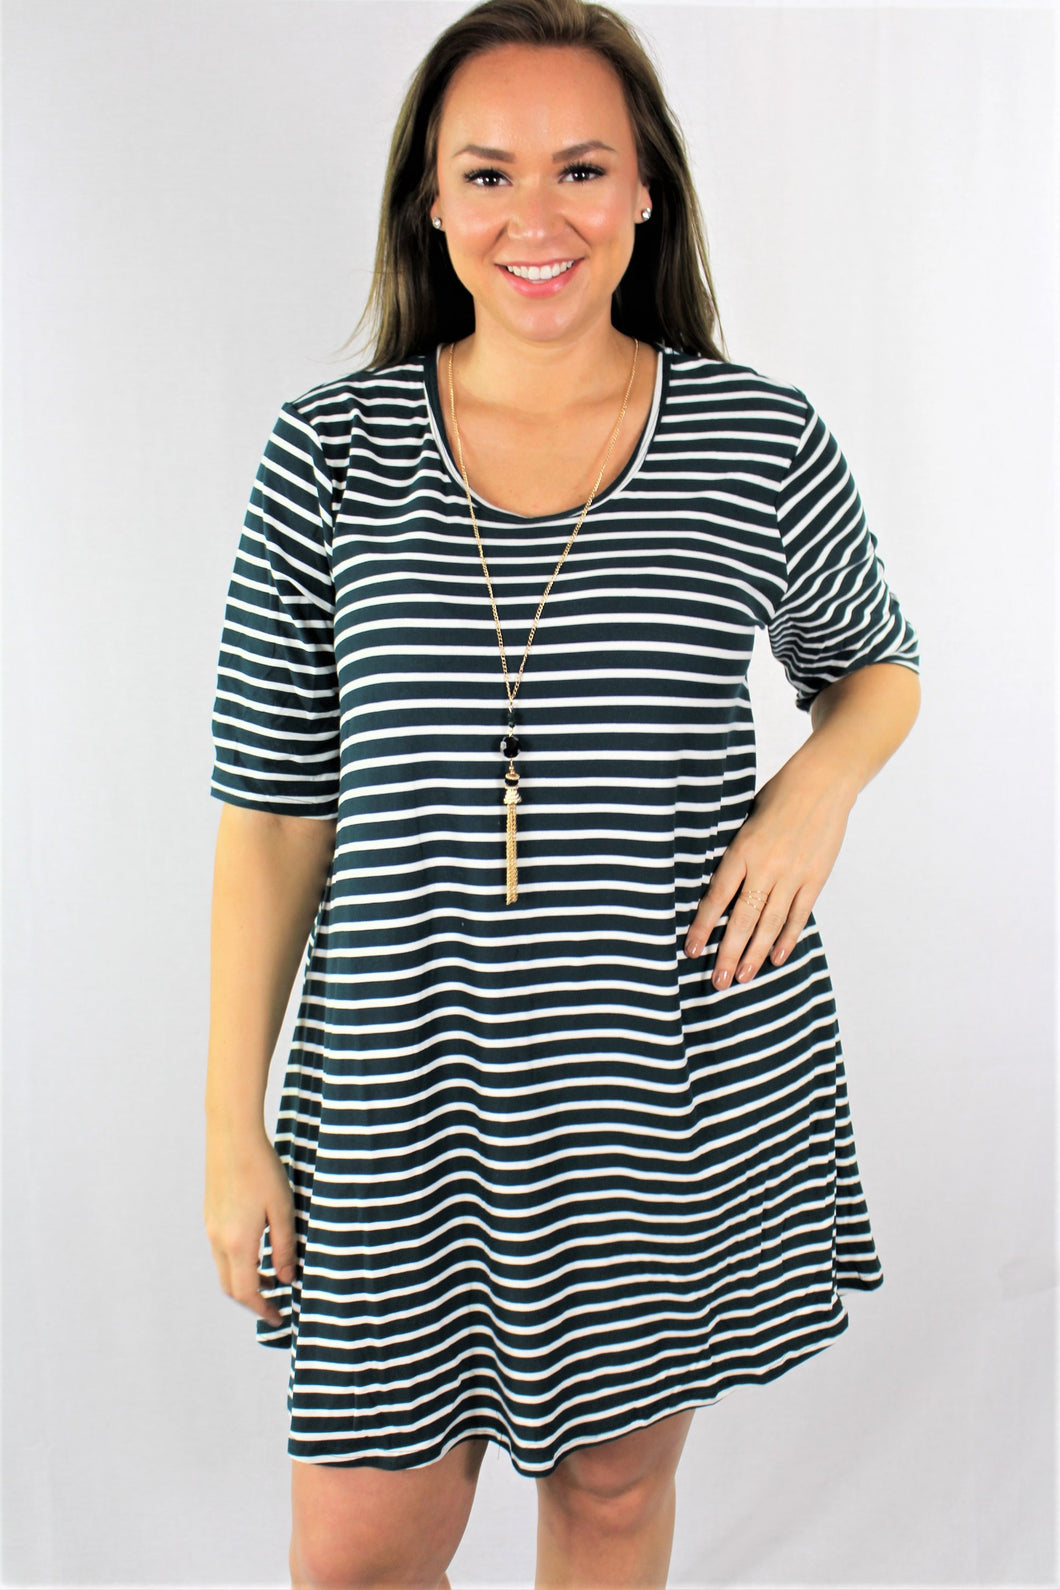 Plus Size Elbow Sleeve Striped Dress 1x2x3x - LSM Boutique's Fashion N Fragrances